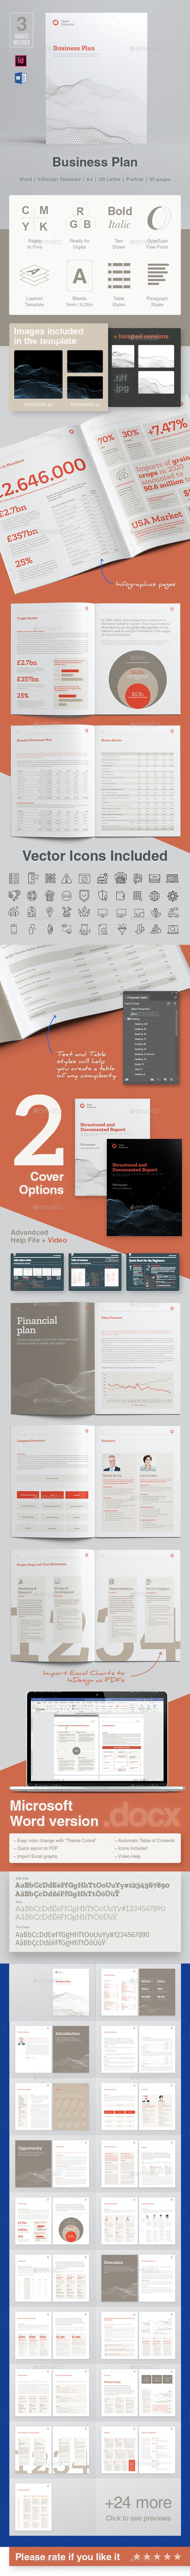 Business Plan 60 Pages - Informational Brochures